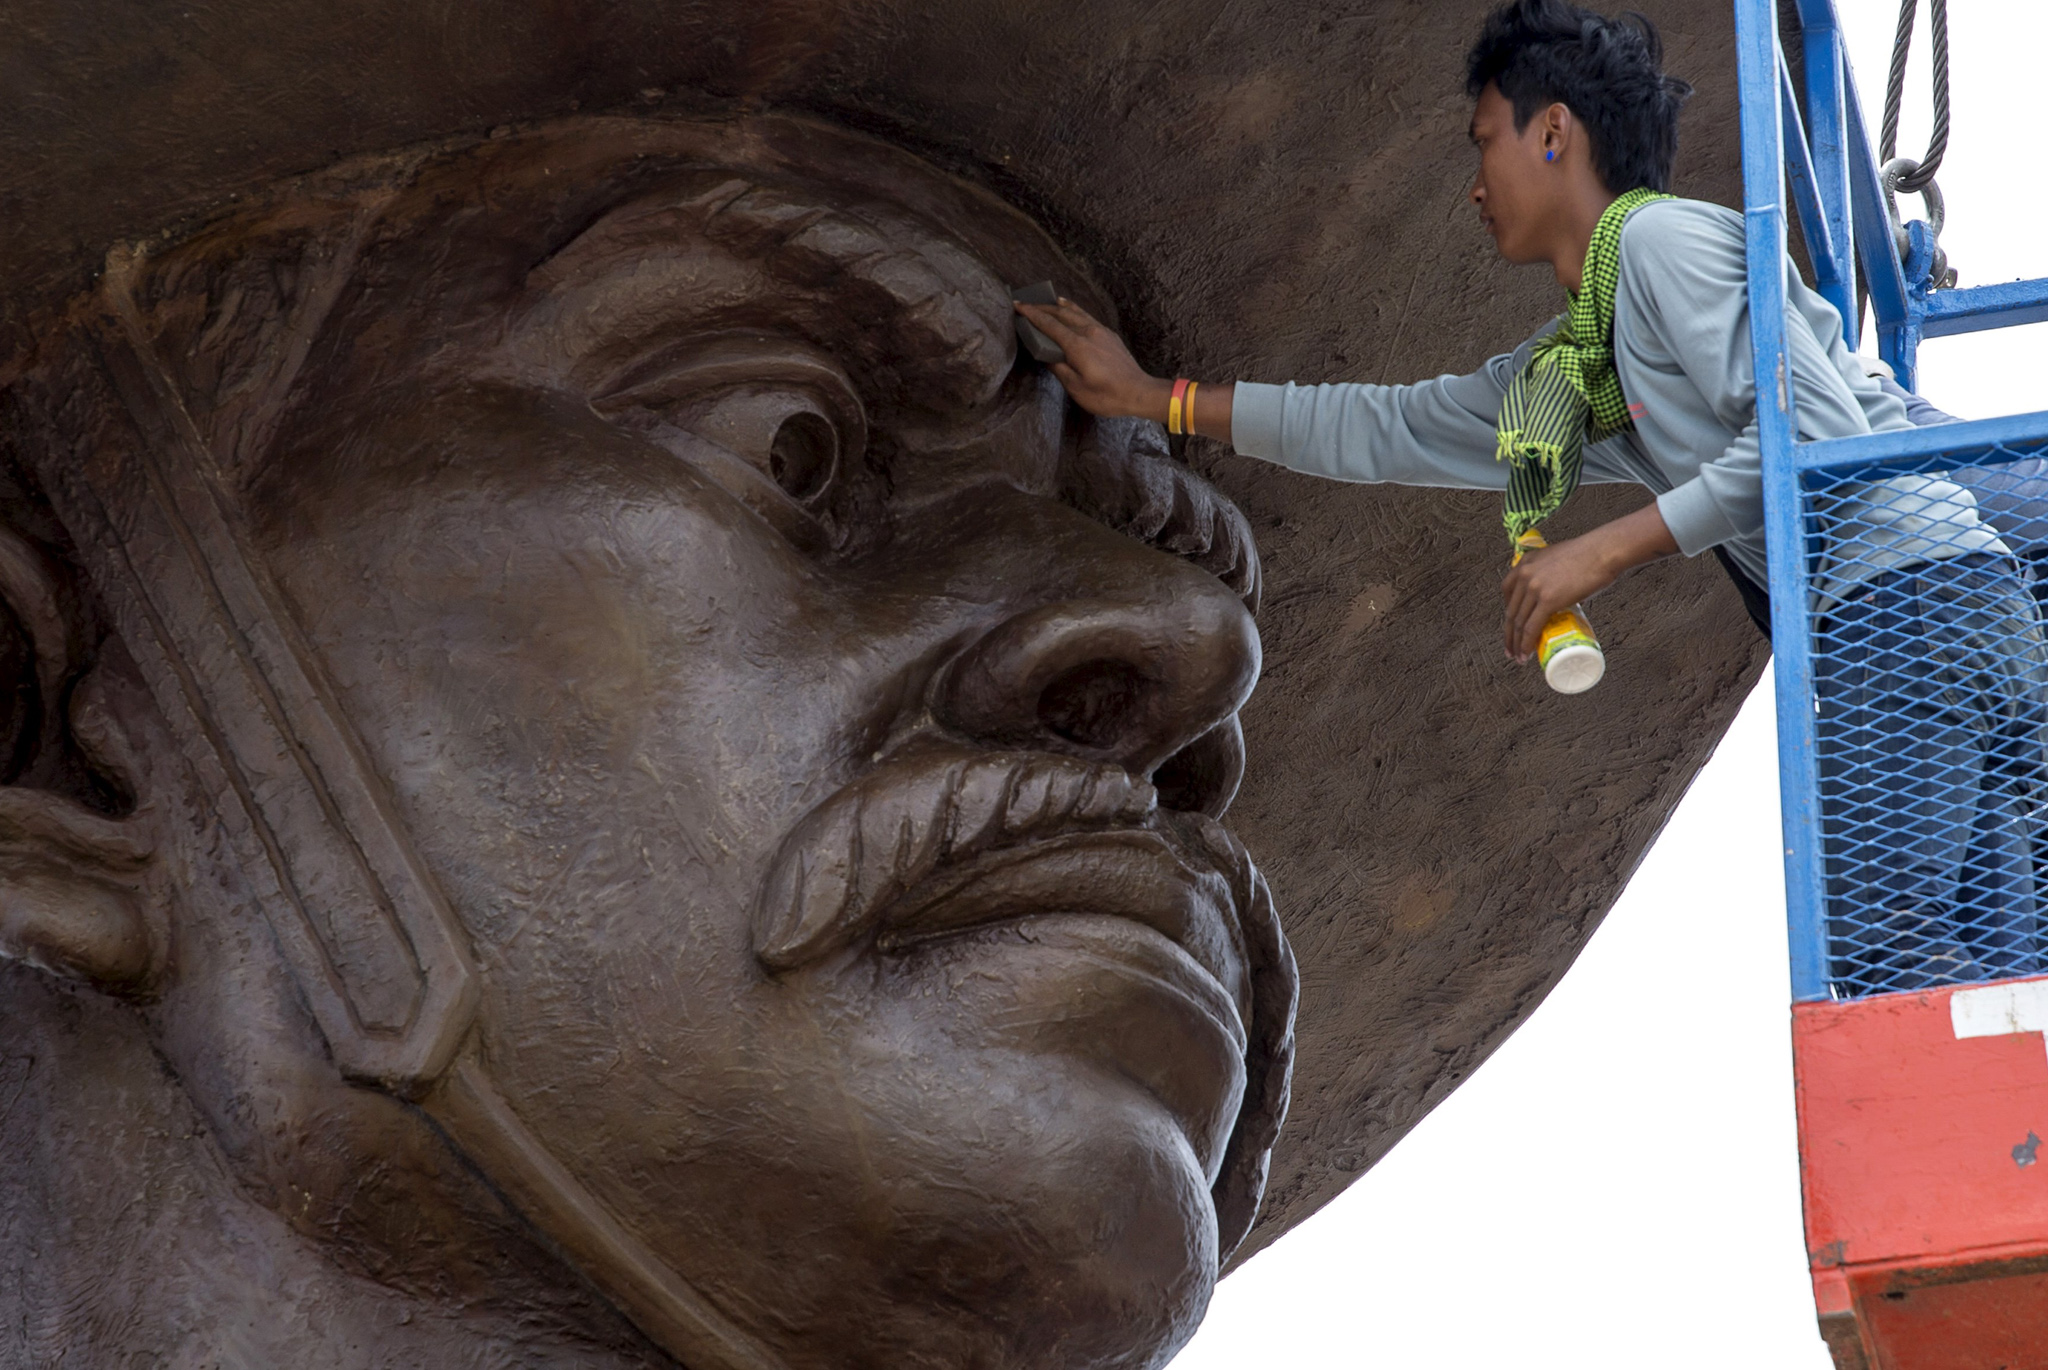 A labourer works on a giant bronze statue of former King Taksin at Ratchapakdi Park in Hua Hin, Prachuap Khiri Khan province, Thailand. The park is being constructed by the Thai army to honor past Thai monarchs and is situated on an army compound near the Klai Kangwon Palace.